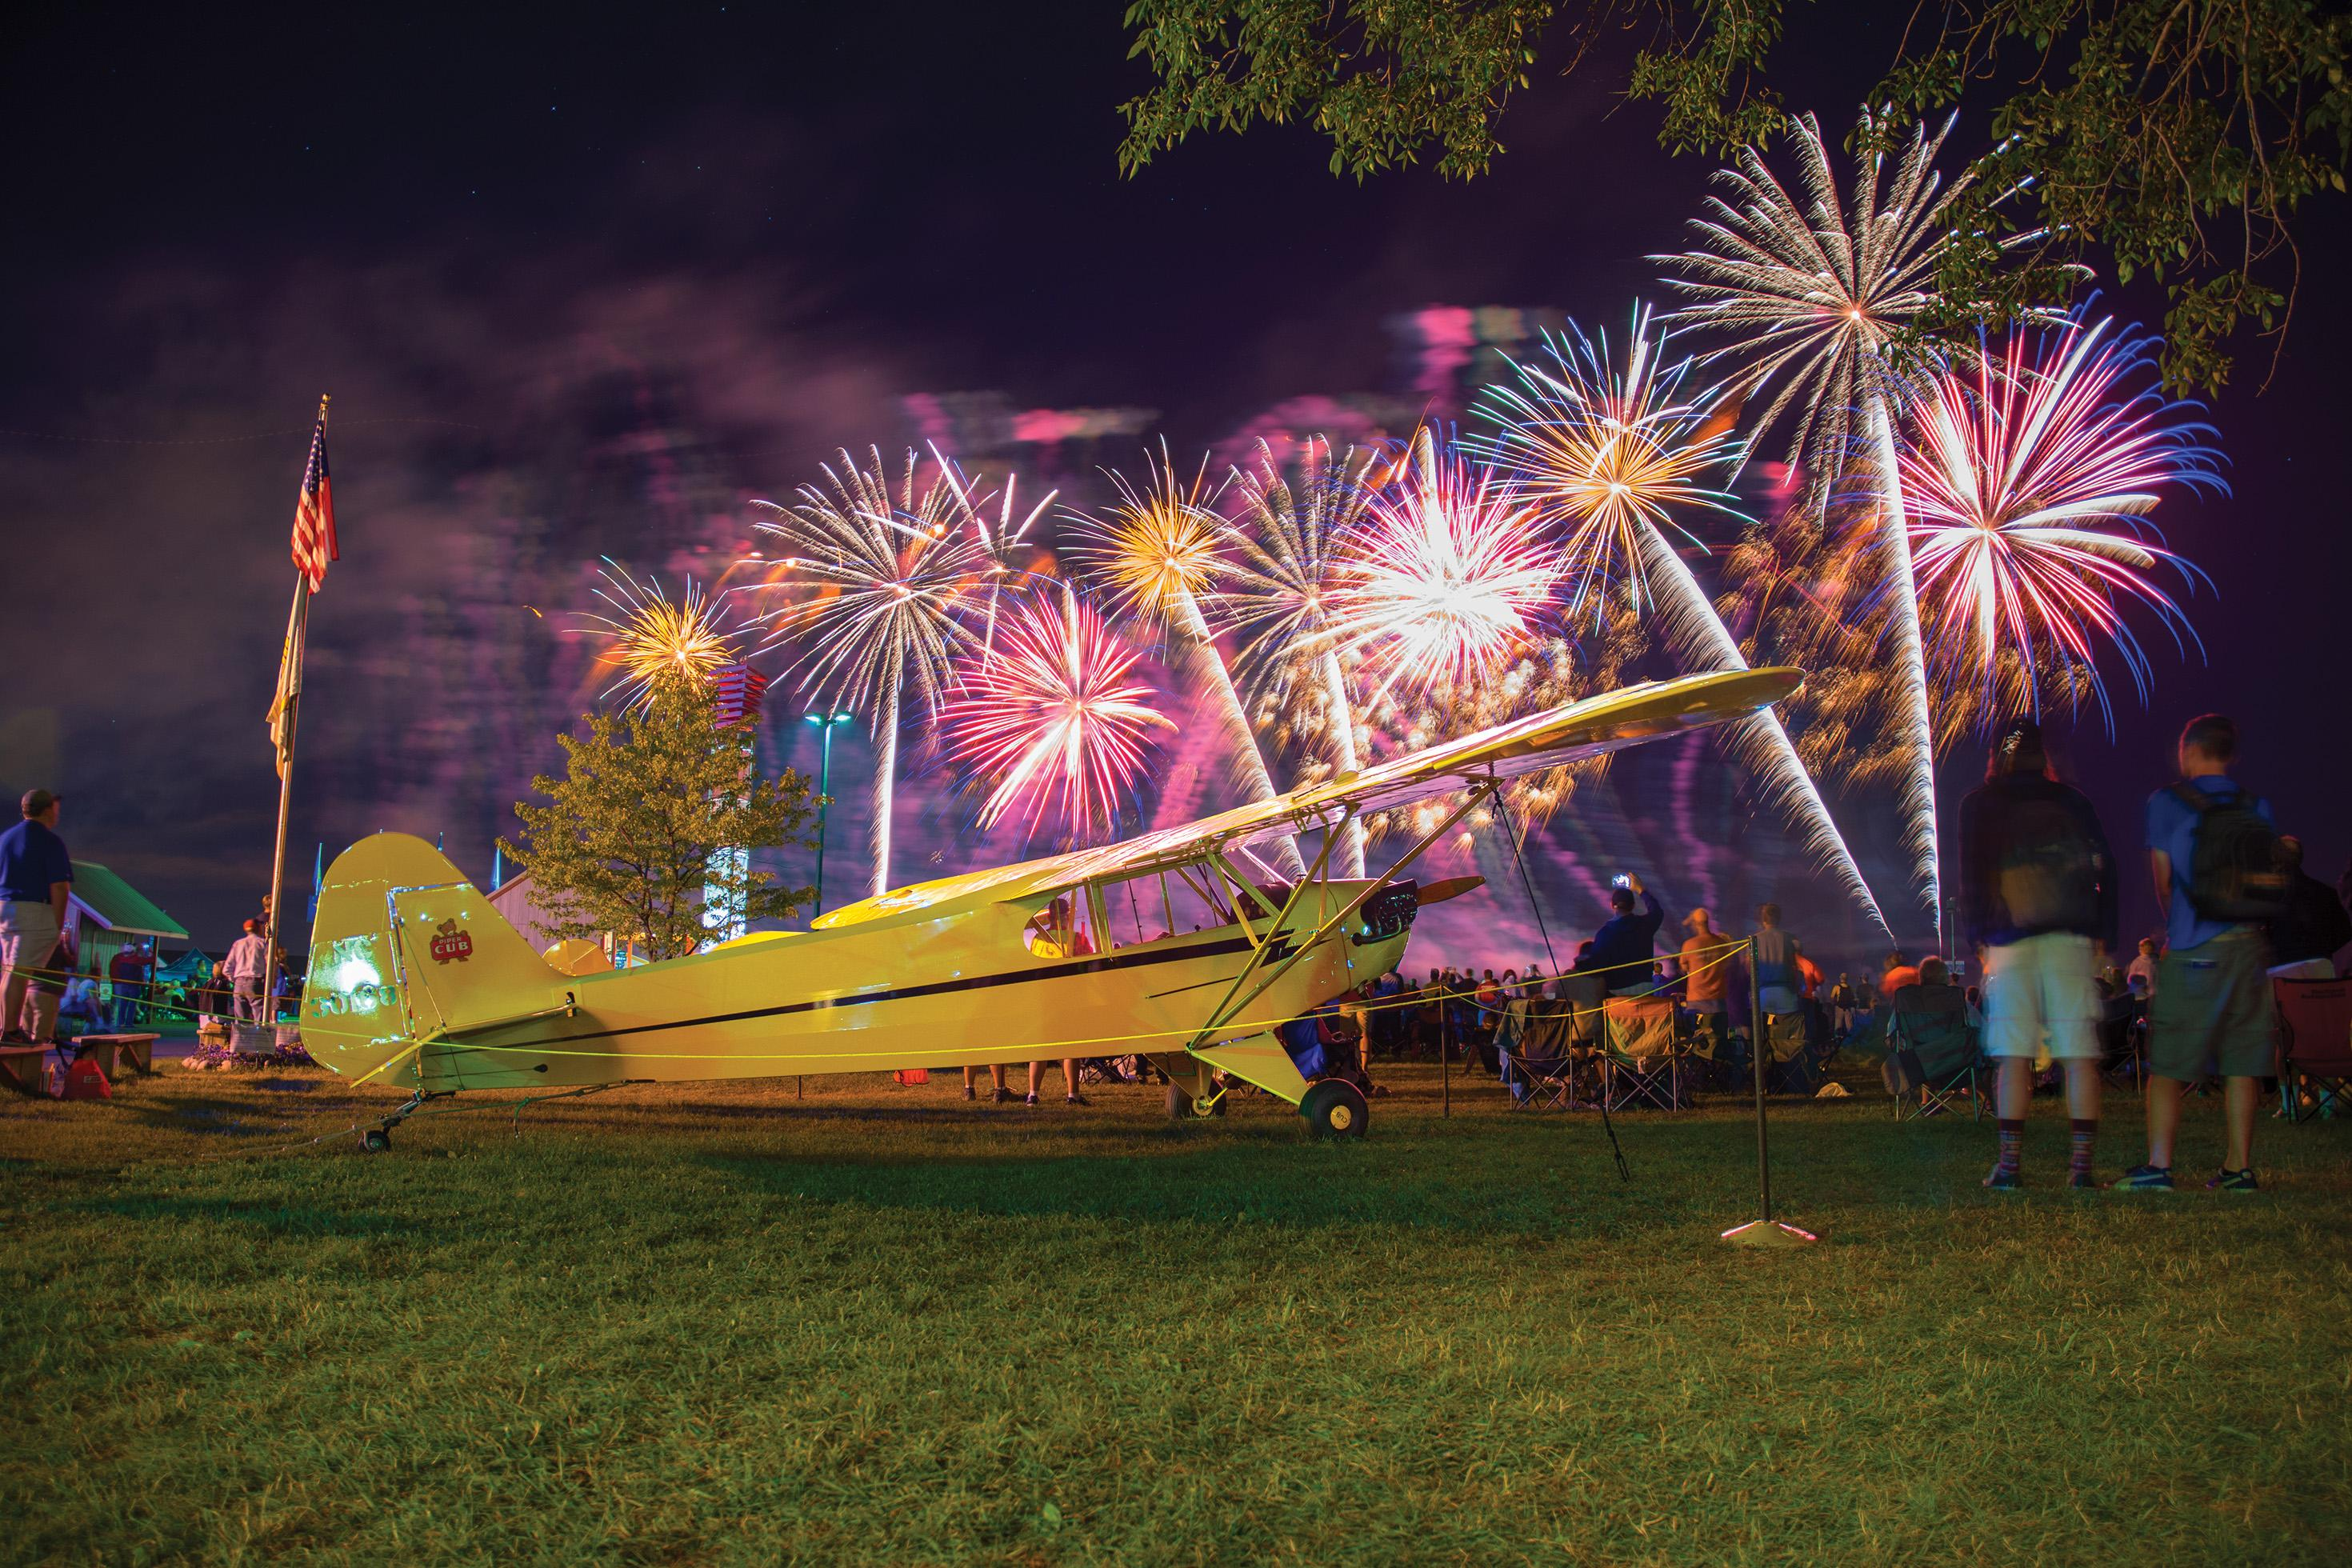 """""""Hooray for airplanes!"""" the fireworks finale at each evening of the AirVenture airshow seems to say. """"All are welcome,"""" from the biggest Air Force transport to the humblest Piper Cub."""